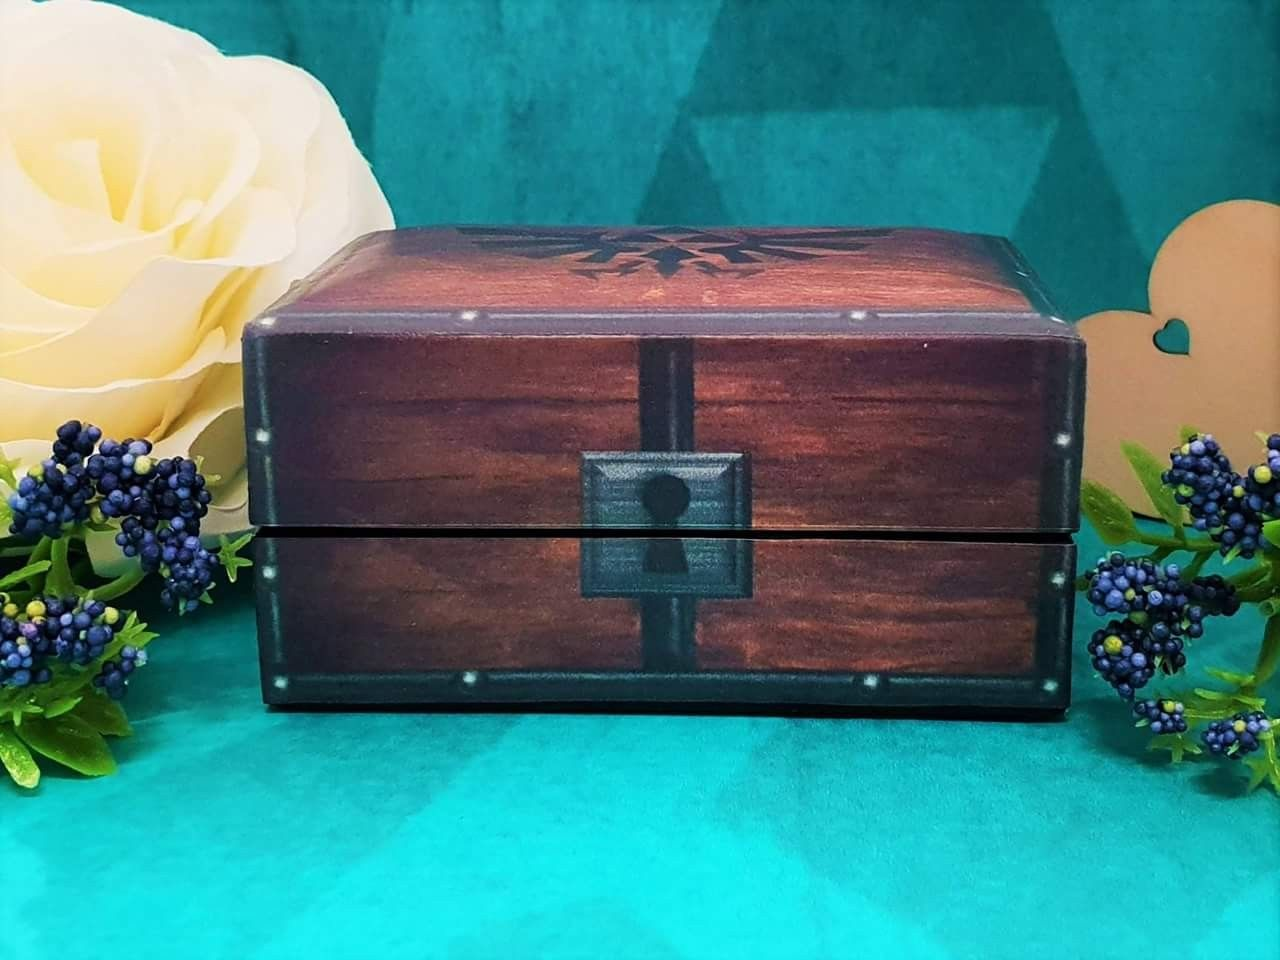 The Legend Of Zelda Double Wedding Ring Box Is Perfect For The Retro